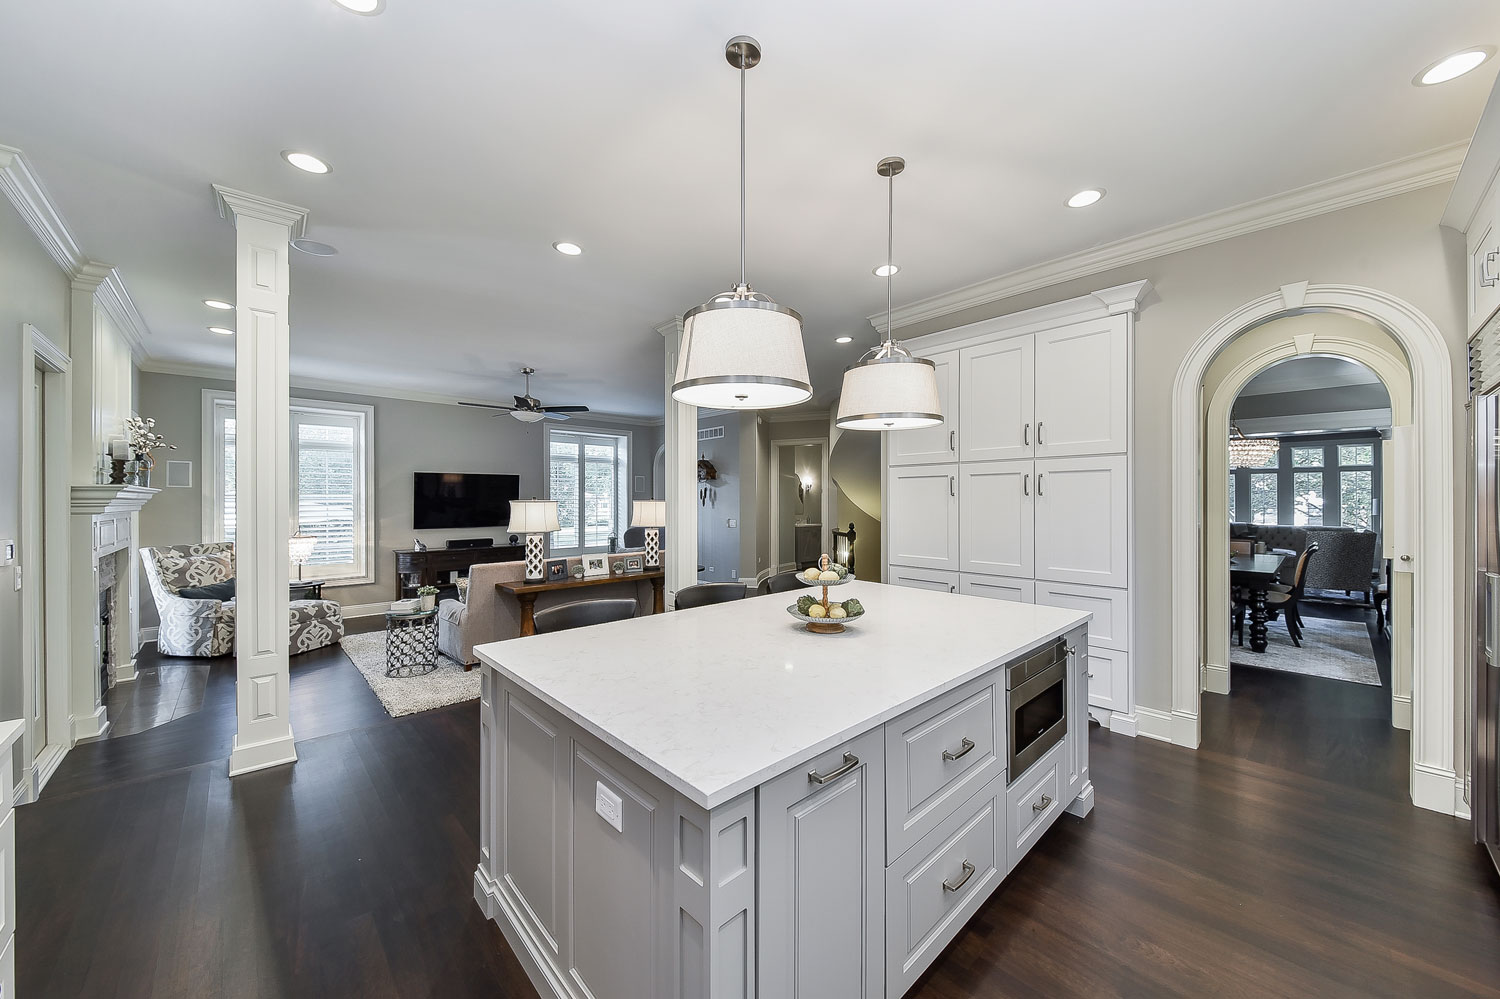 Naperville White Kitchen Quartz Grey Island - Sebring Design Build